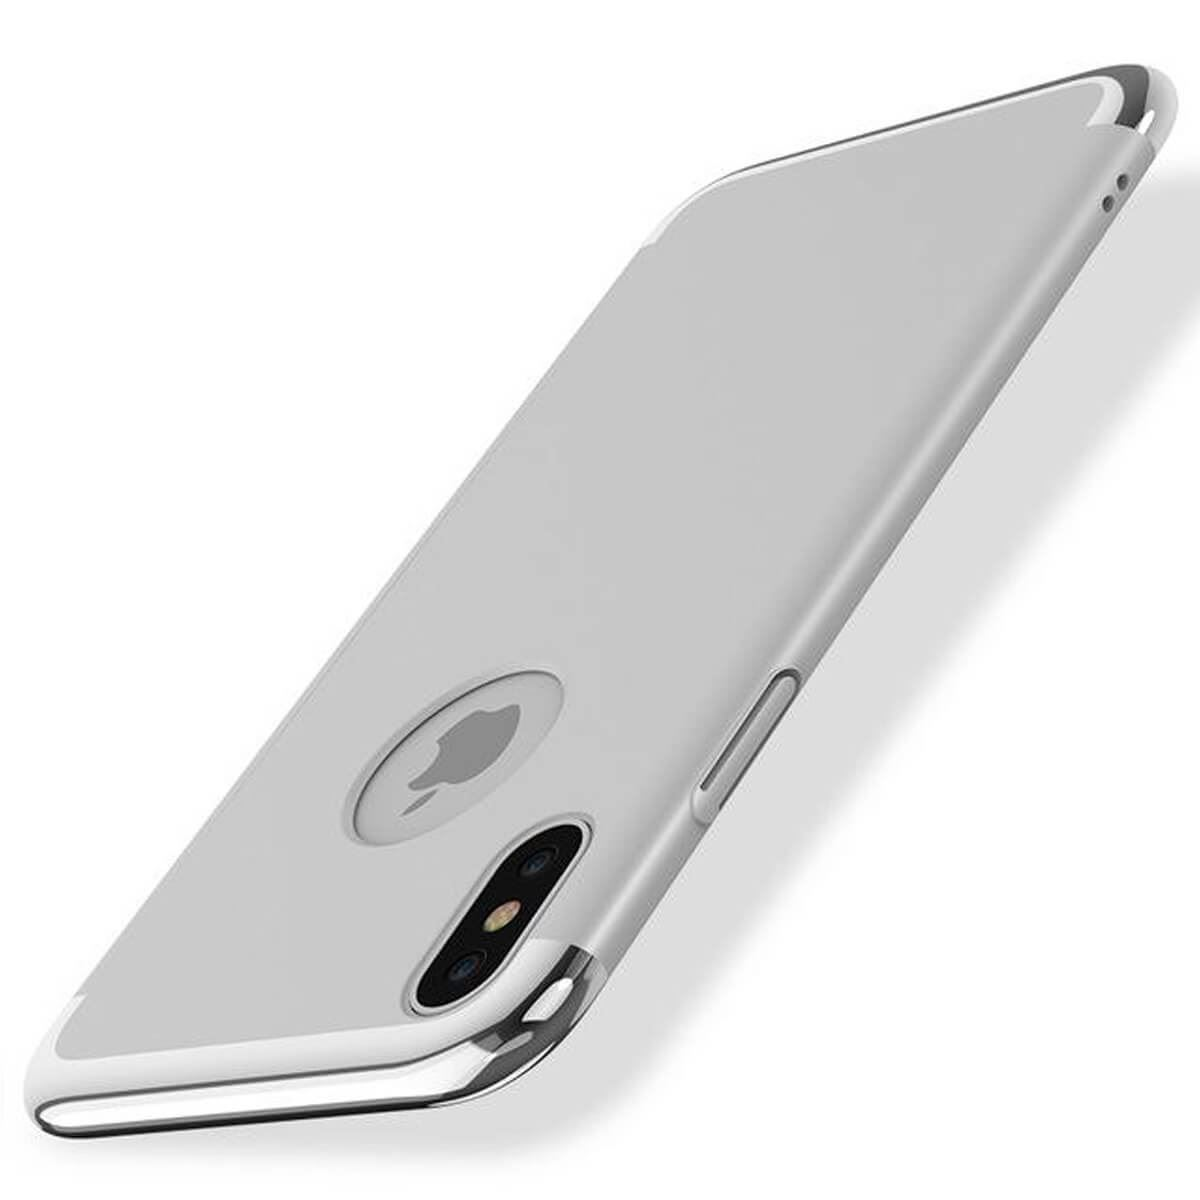 ShockProof-Thin-Case-For-Apple-iPhone-5-Se-7-6s-Plus-360-Hybrid-Matte-Slim-Cover thumbnail 40